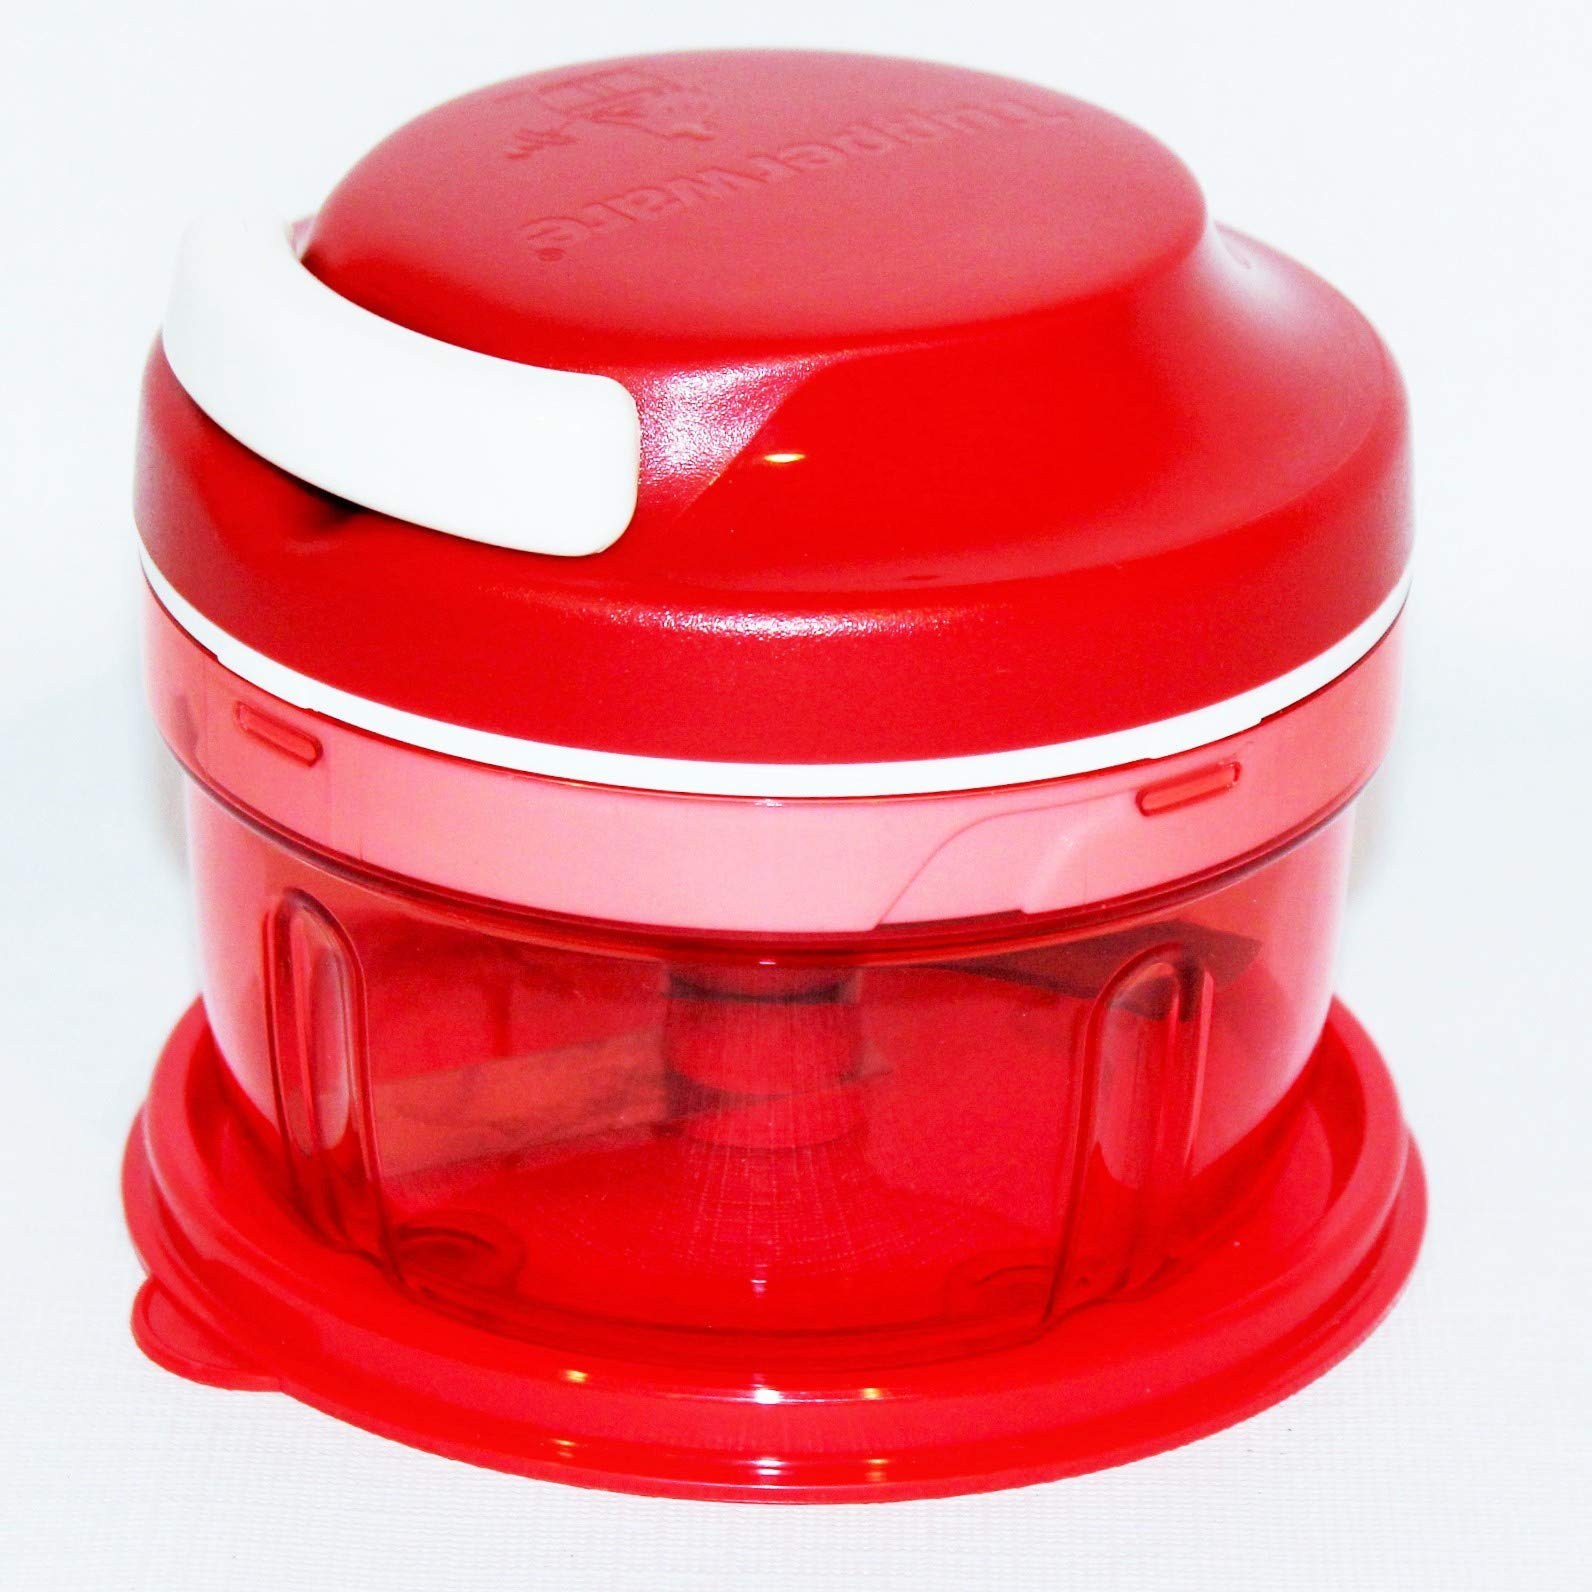 Tupperware Chop N Prep Chef Mini Chopper with Pull Cord Red by Tupperware